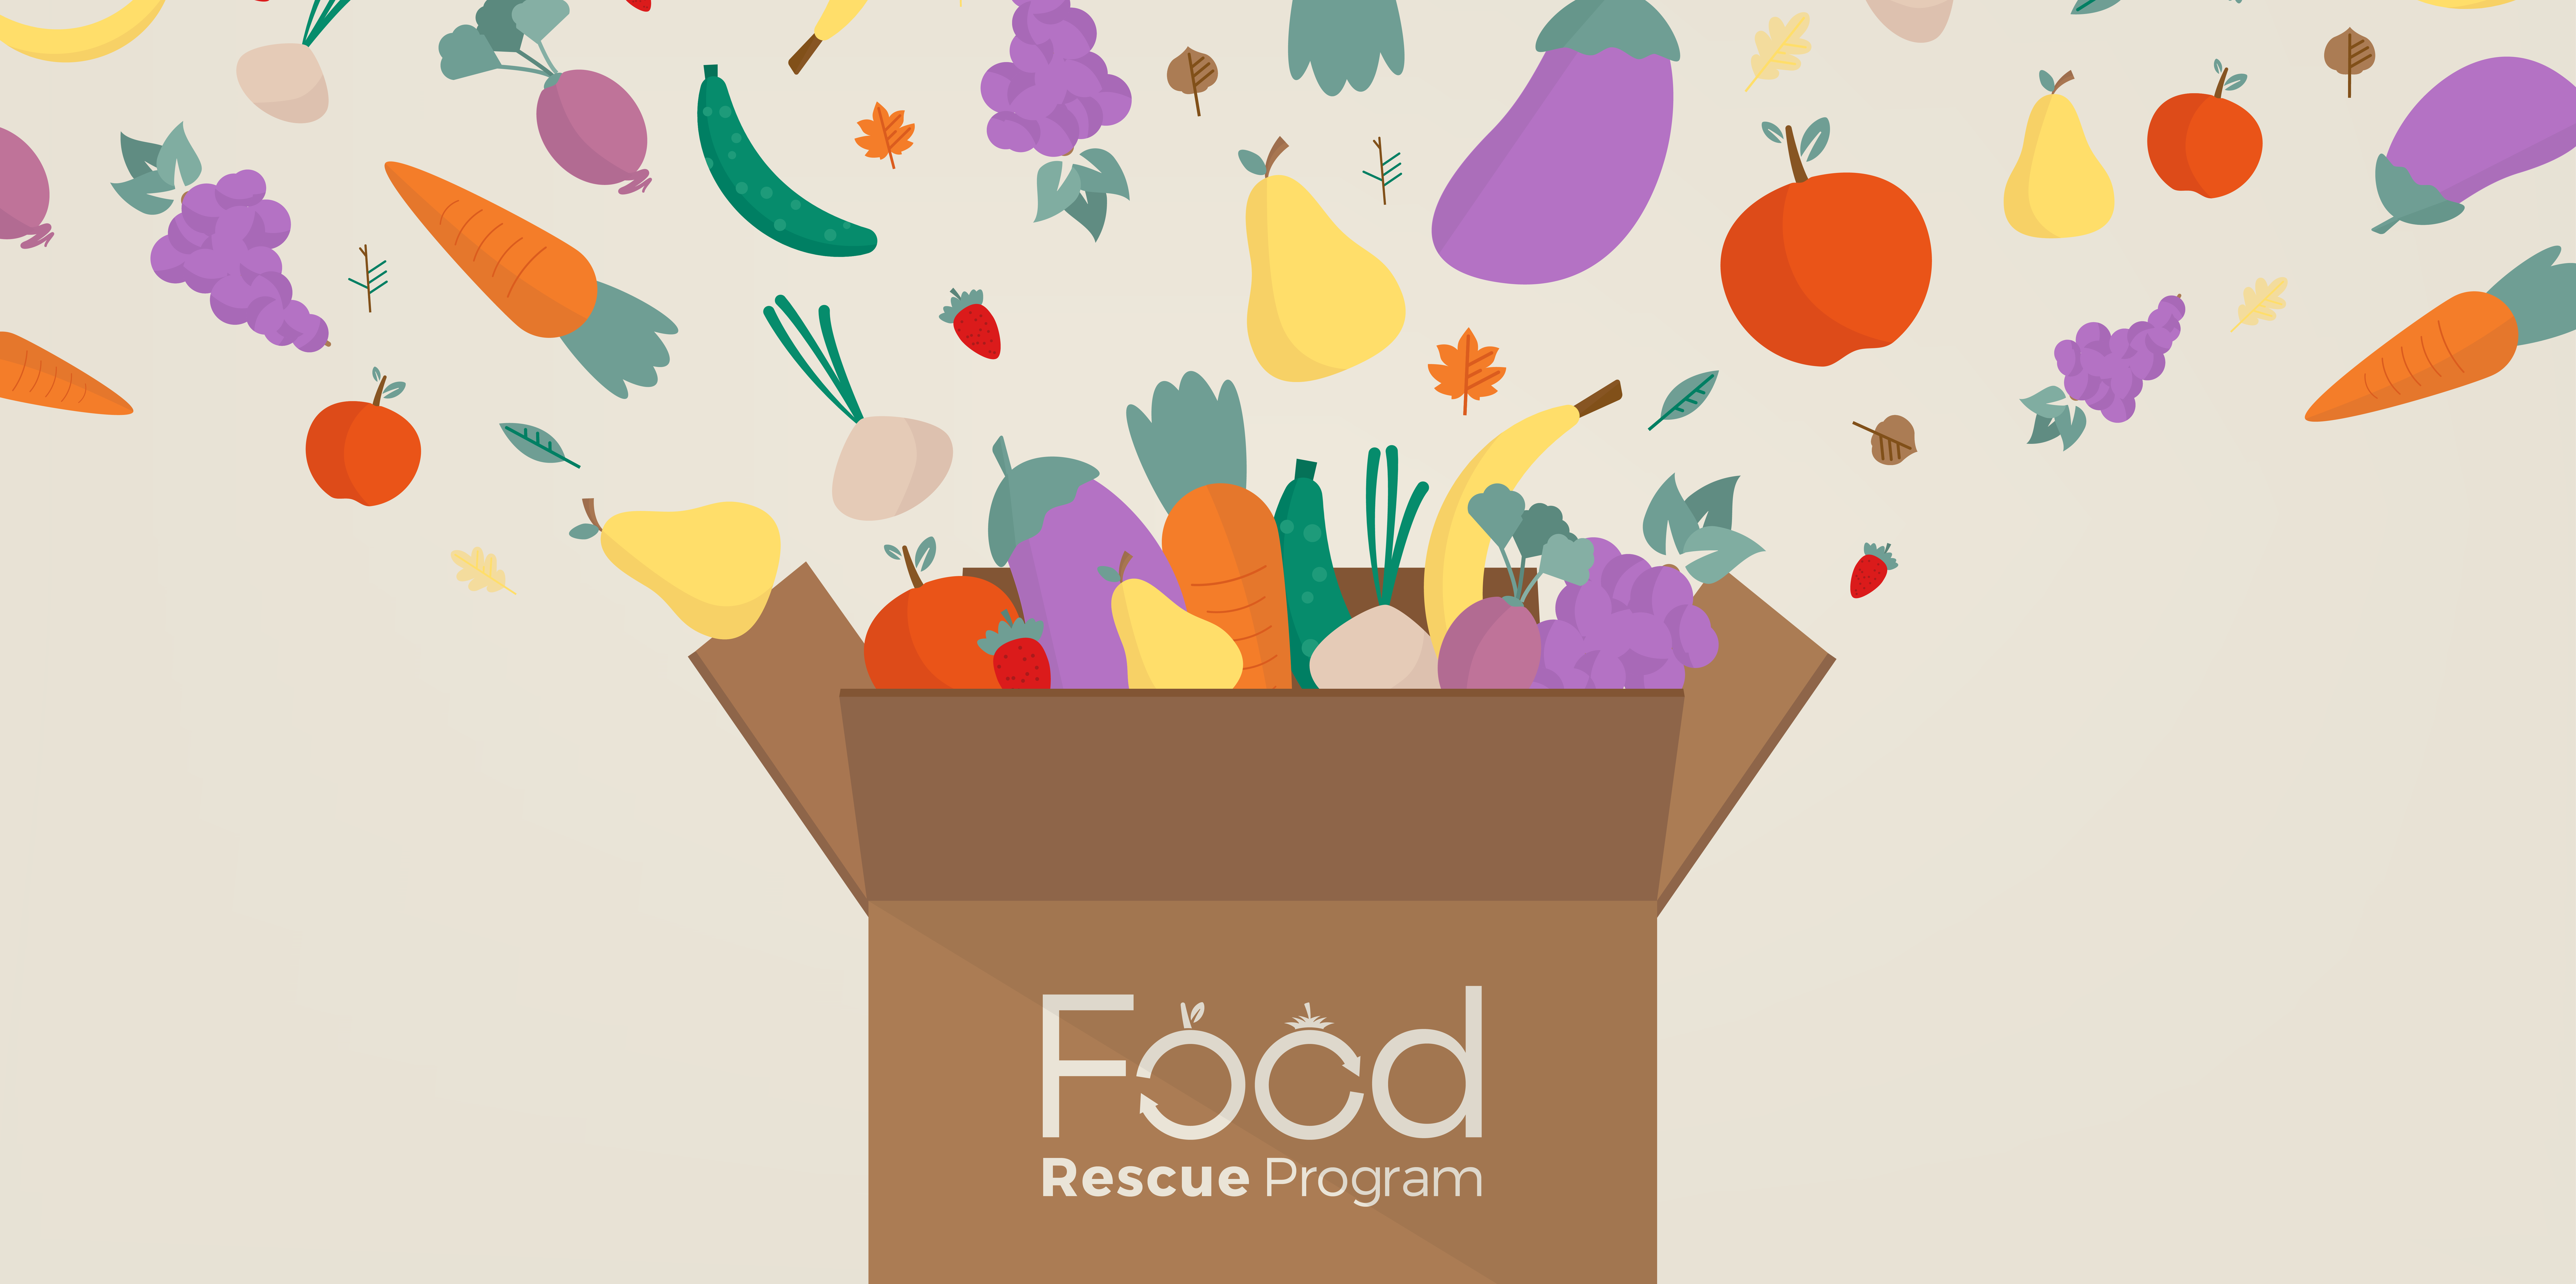 Food_Rescue_Program_Graphic-01.png